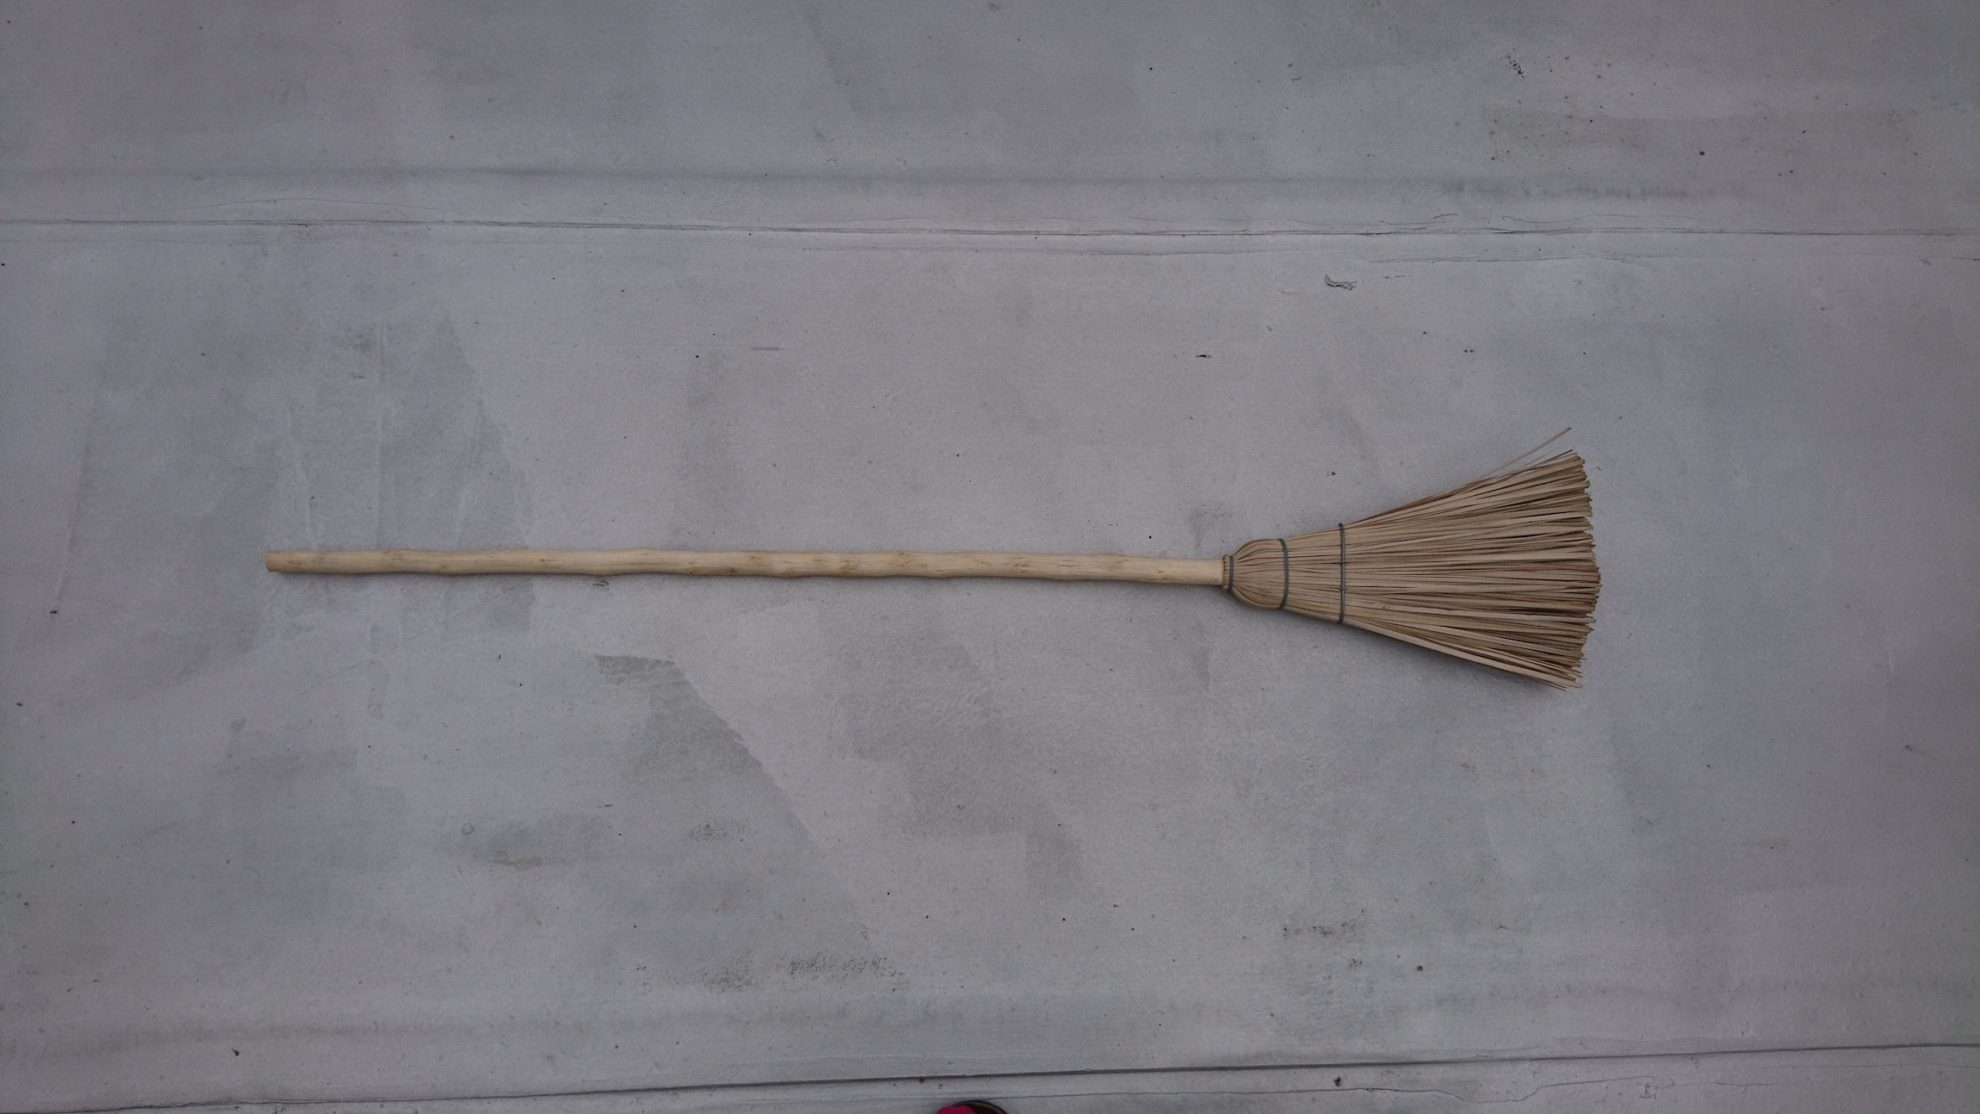 broom for sweeping